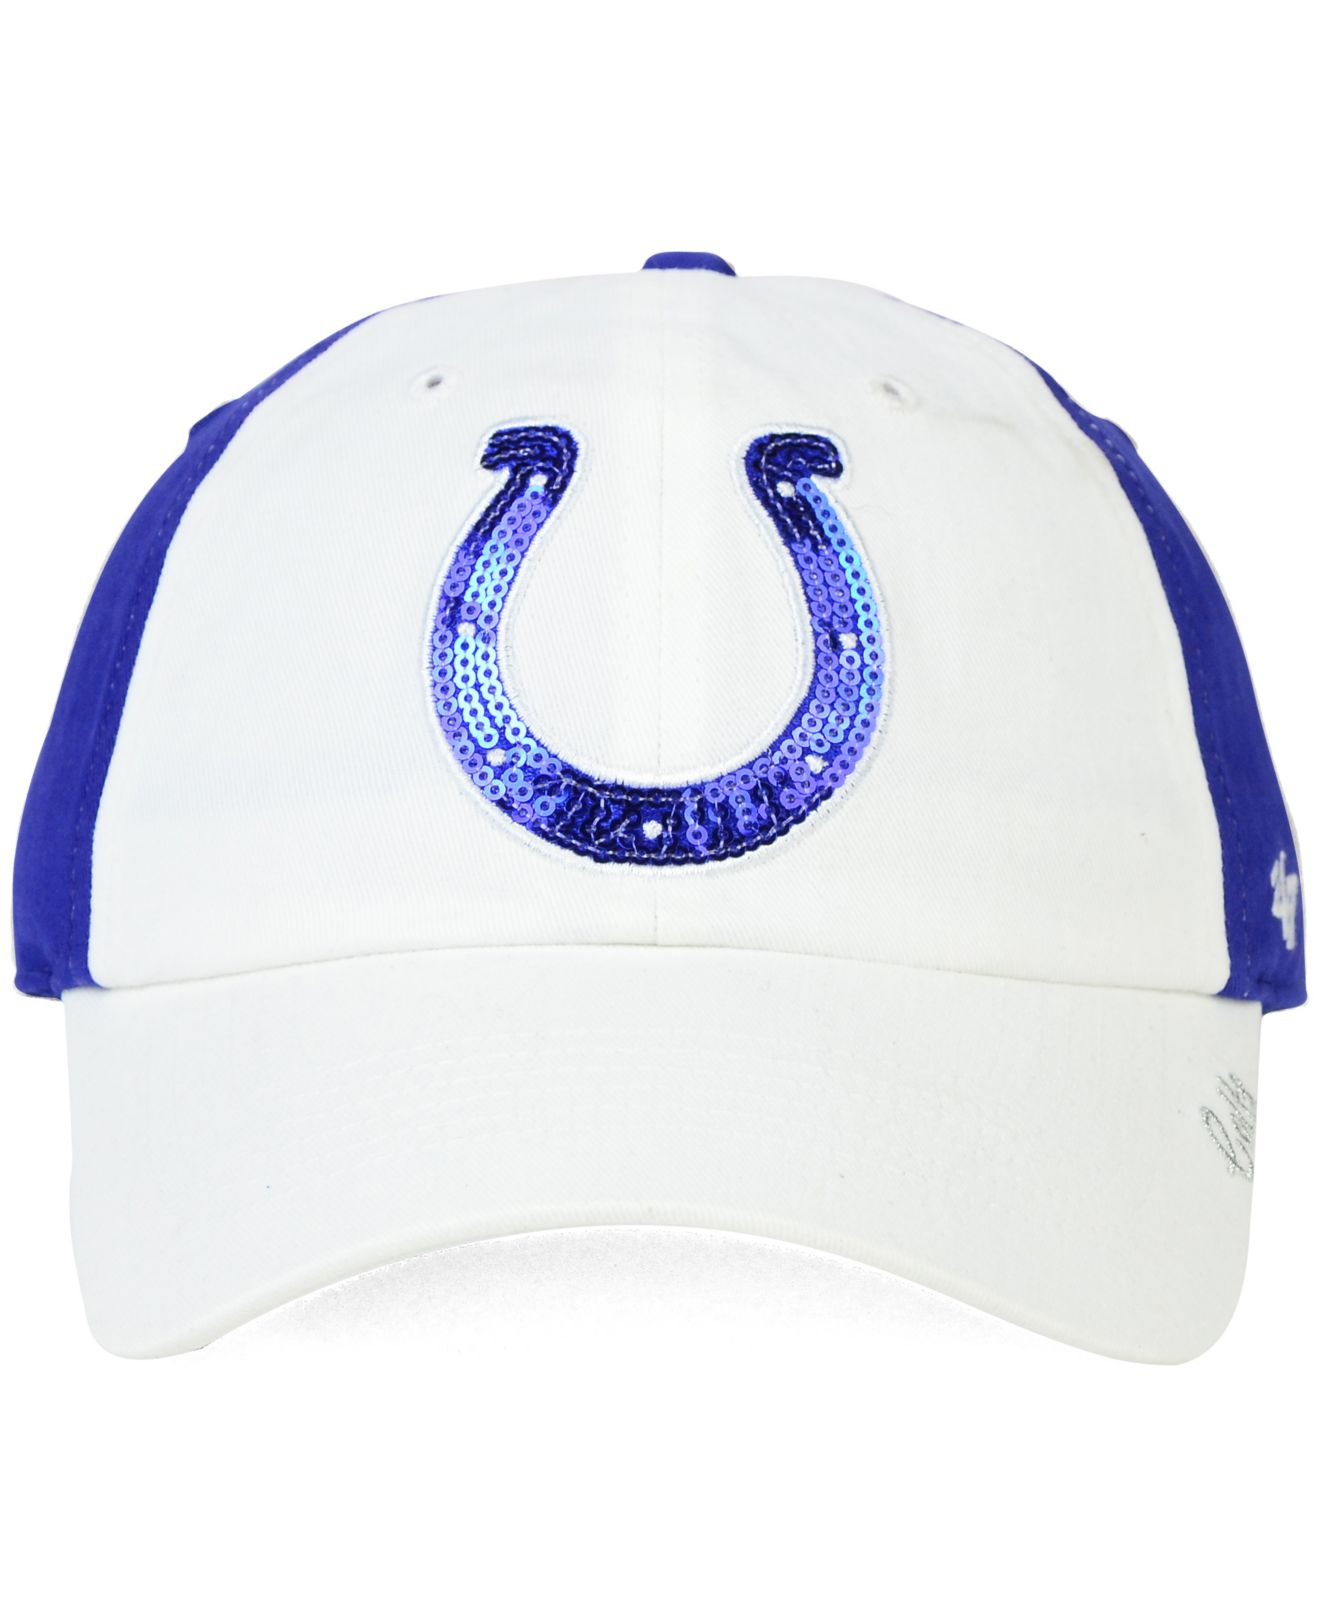 release date 149bb 76baf Lyst - 47 Brand Women s Indianapolis Colts Sparkle 2-tone Adjustable ...